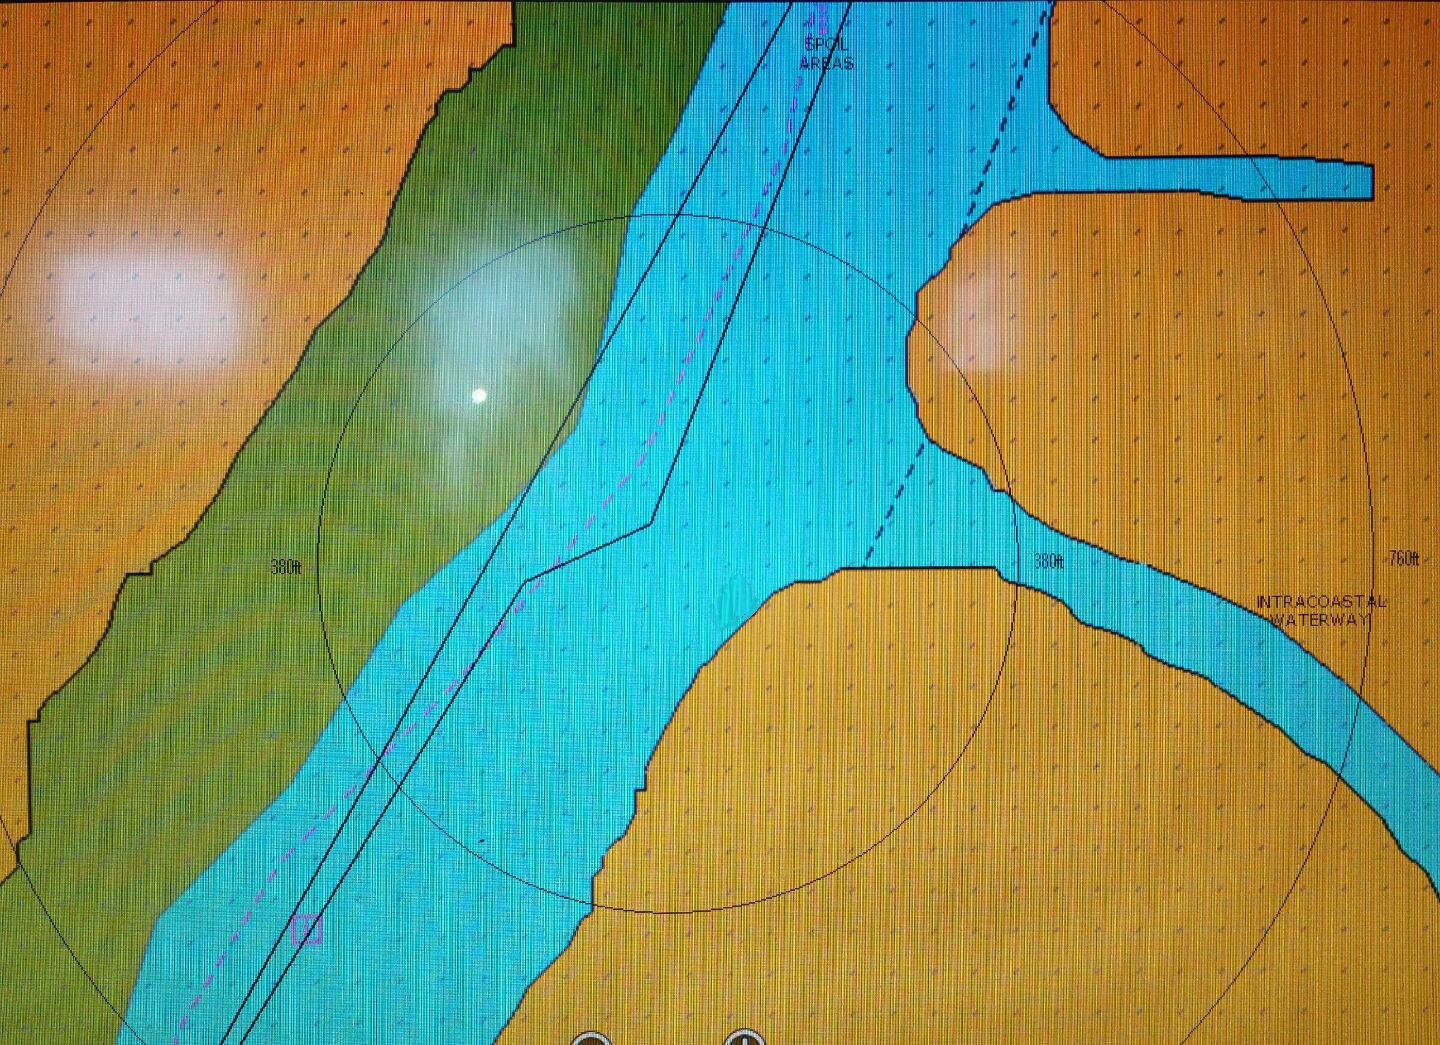 The dotted magenta line indicates the ICW centerline, but its not always  accurate. The blue indicates sufficient water and the green indicates a  shoal.